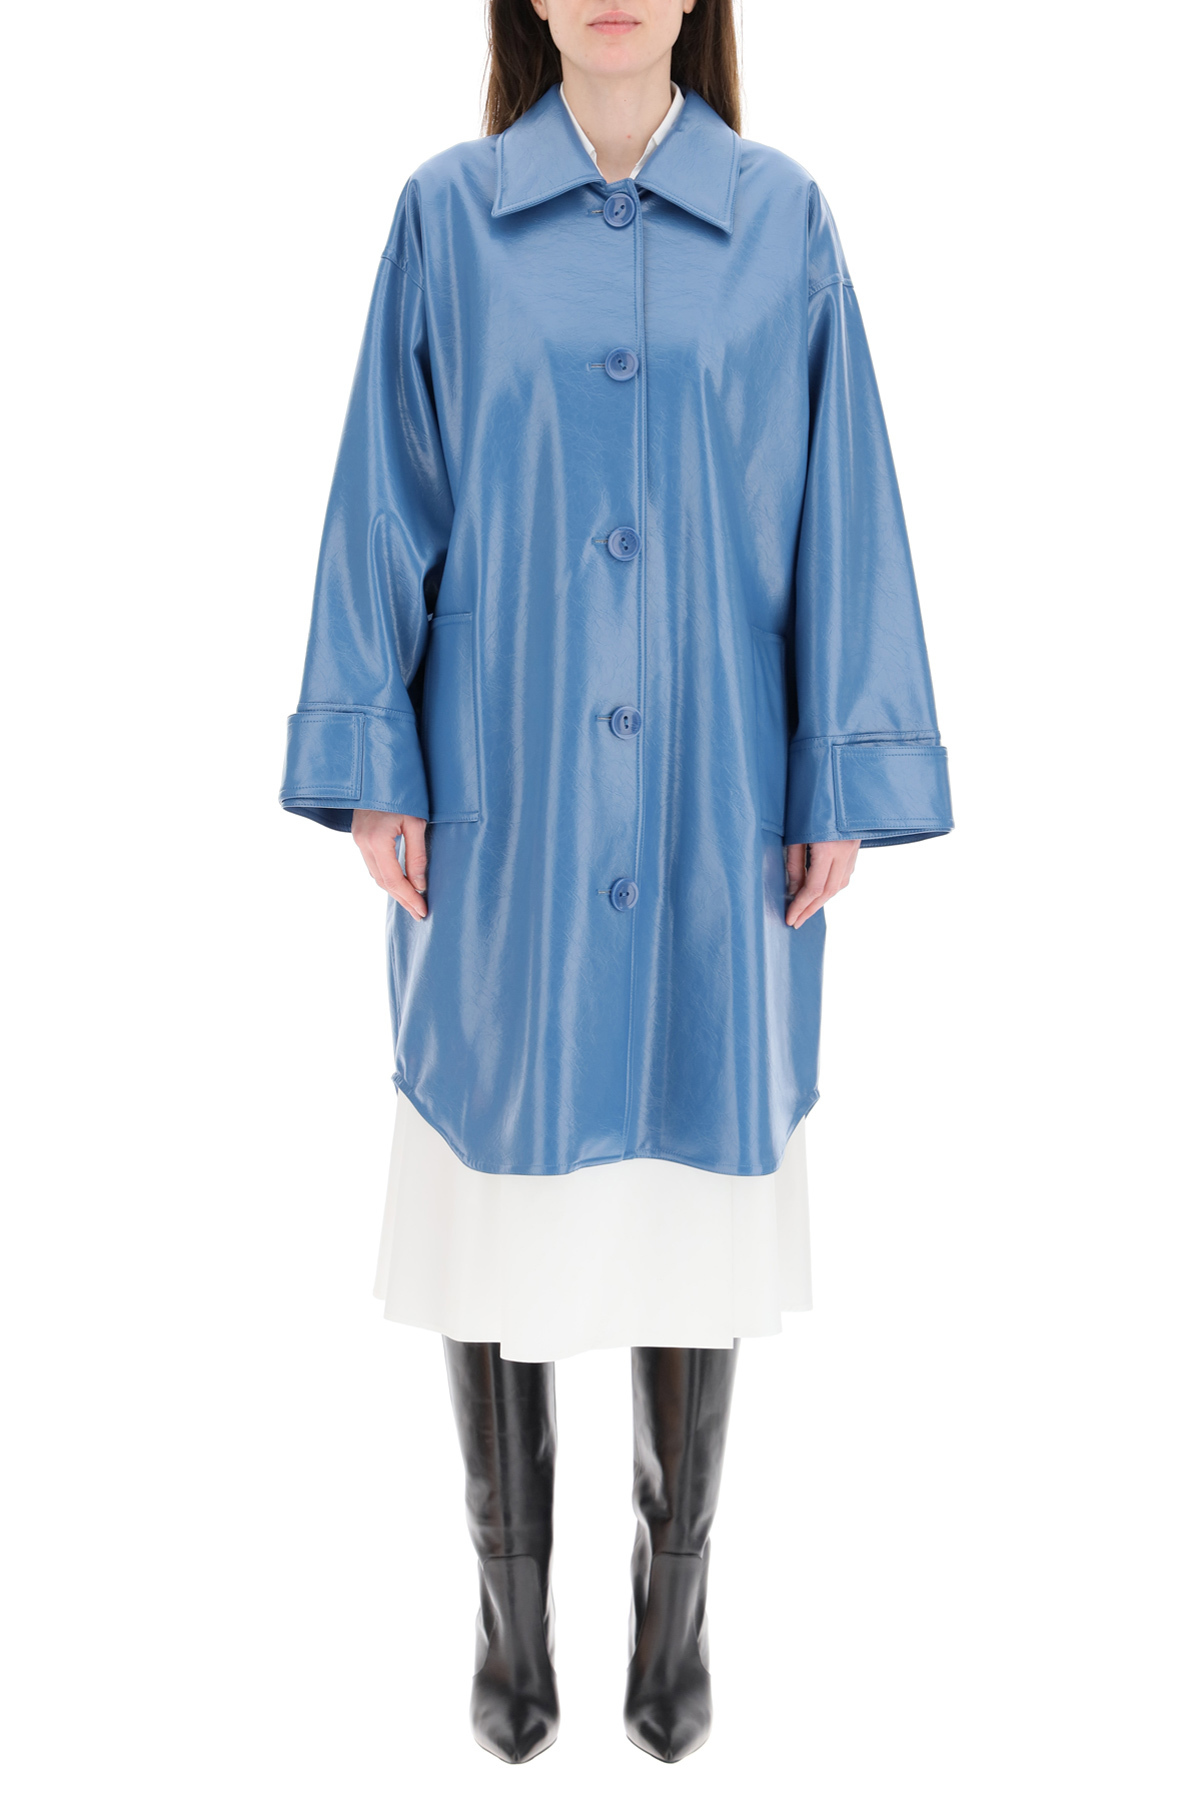 Stand cappotto kali ecopelle